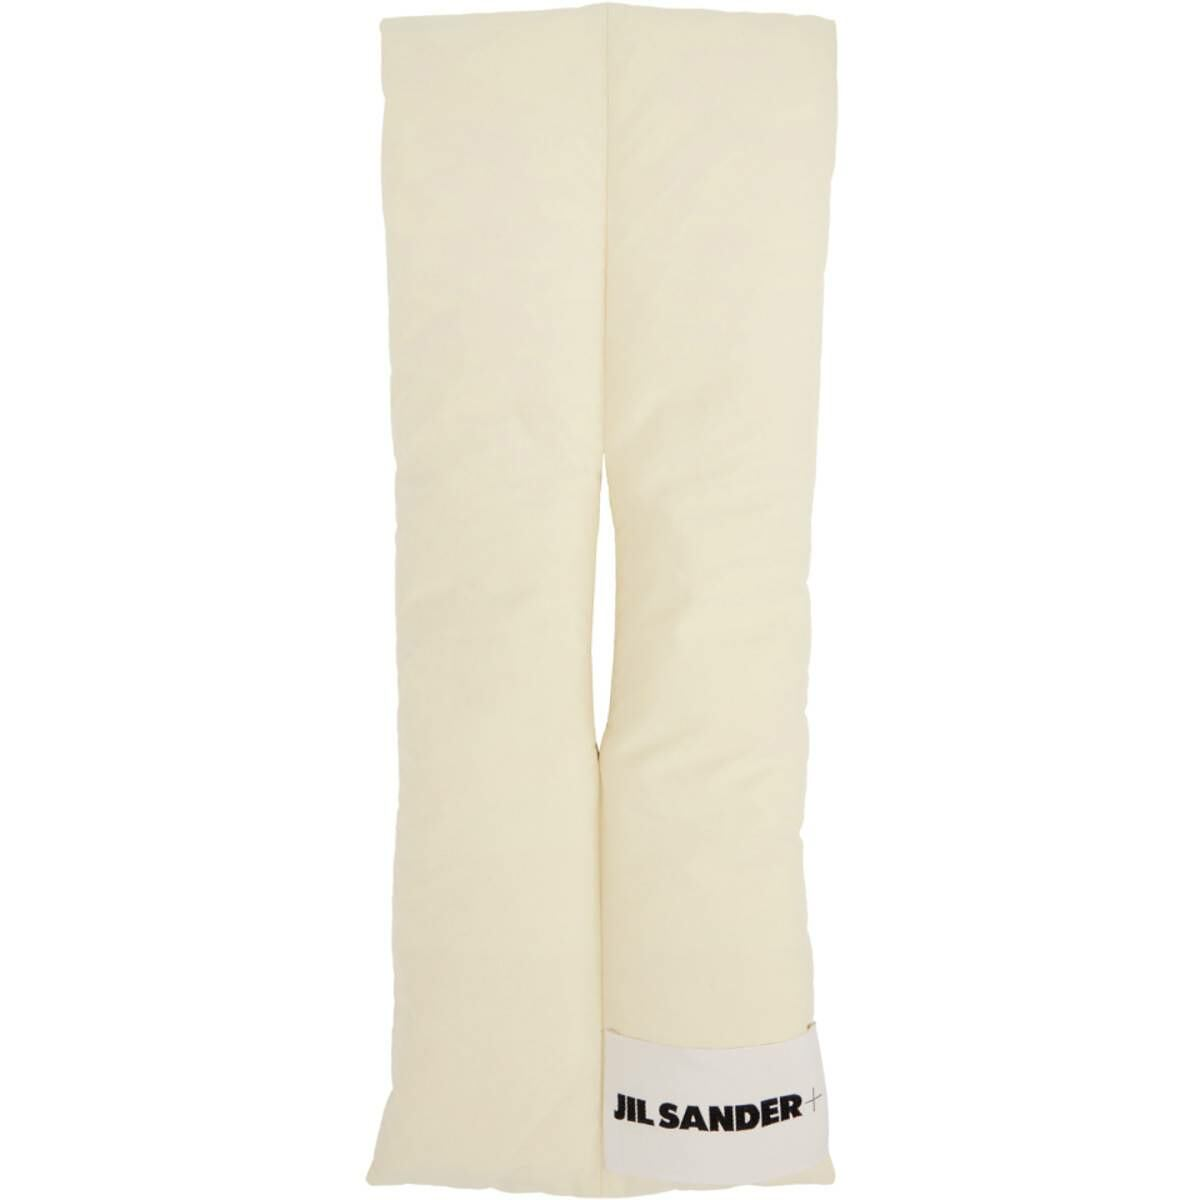 Jil Sander Off-White Down Scarf Ssense USA MEN Men ACCESSORIES Mens SCARFS